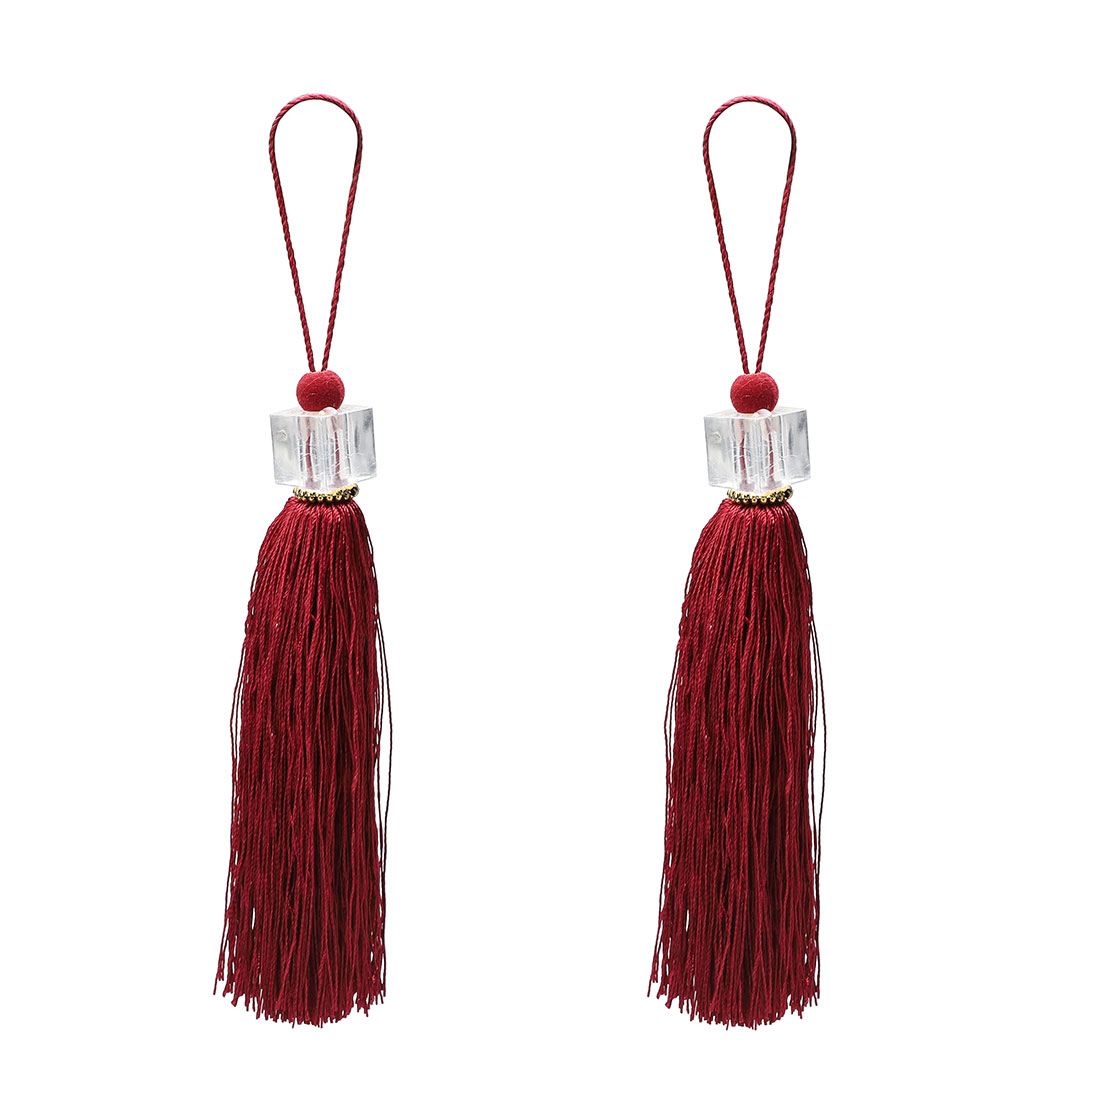 2Pcs Silky Tassels Pendant Sewing DIY Craft Supply Curtain Drapery Deco Dark Red